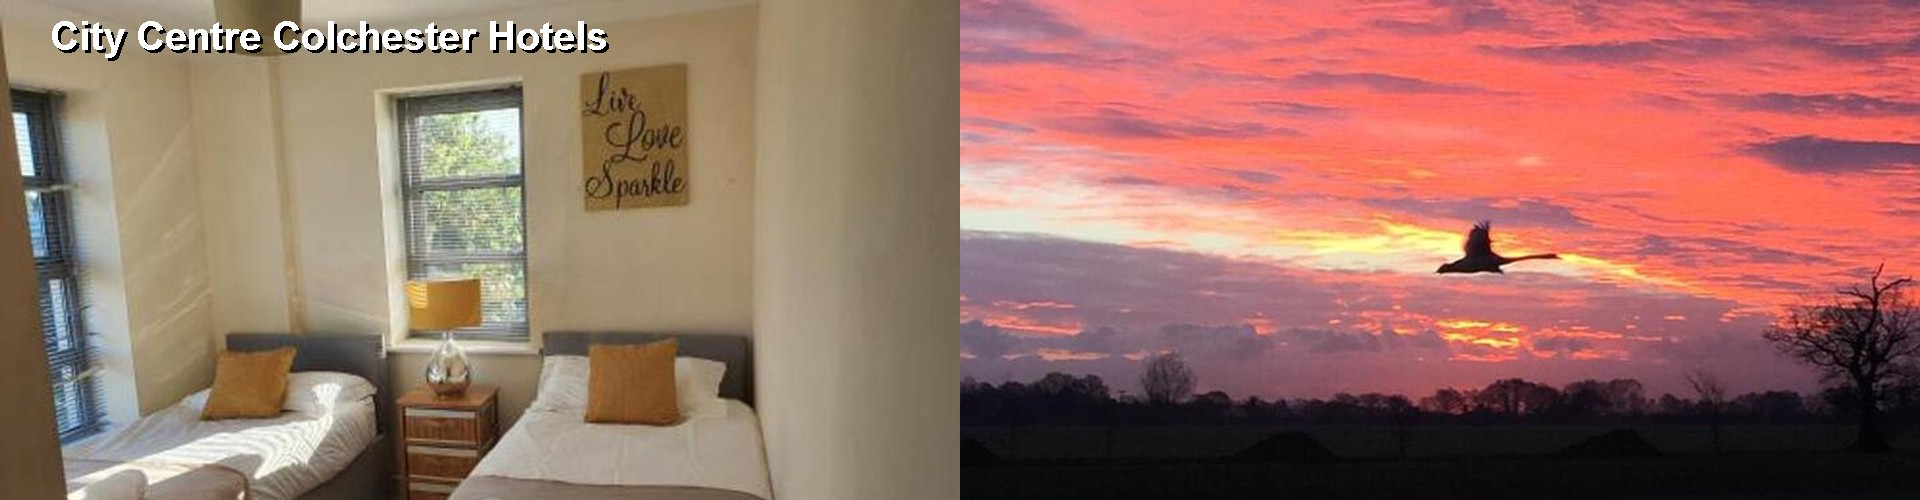 5 Best Hotels near City Centre Colchester